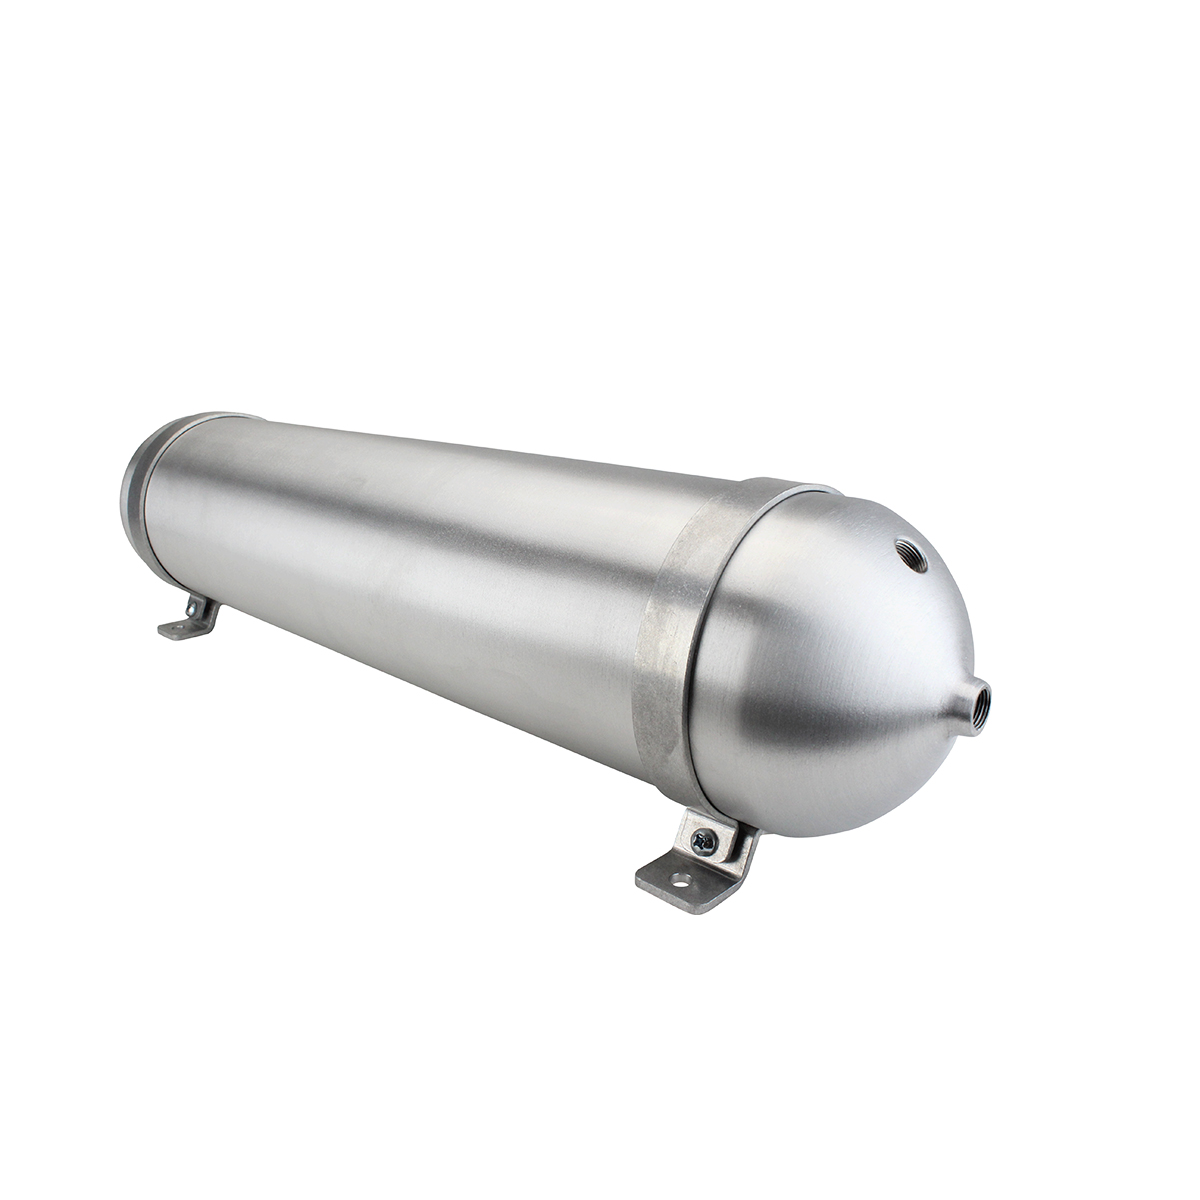 "SA528038-01 Seamless Tanks Aluminum Air Tank 28"" Length 5.562"" Diameter, (4) 3/8"" Ports (1) 1/4"" Port, 200psi Rated, Actual Volume 2.42 Gallons"